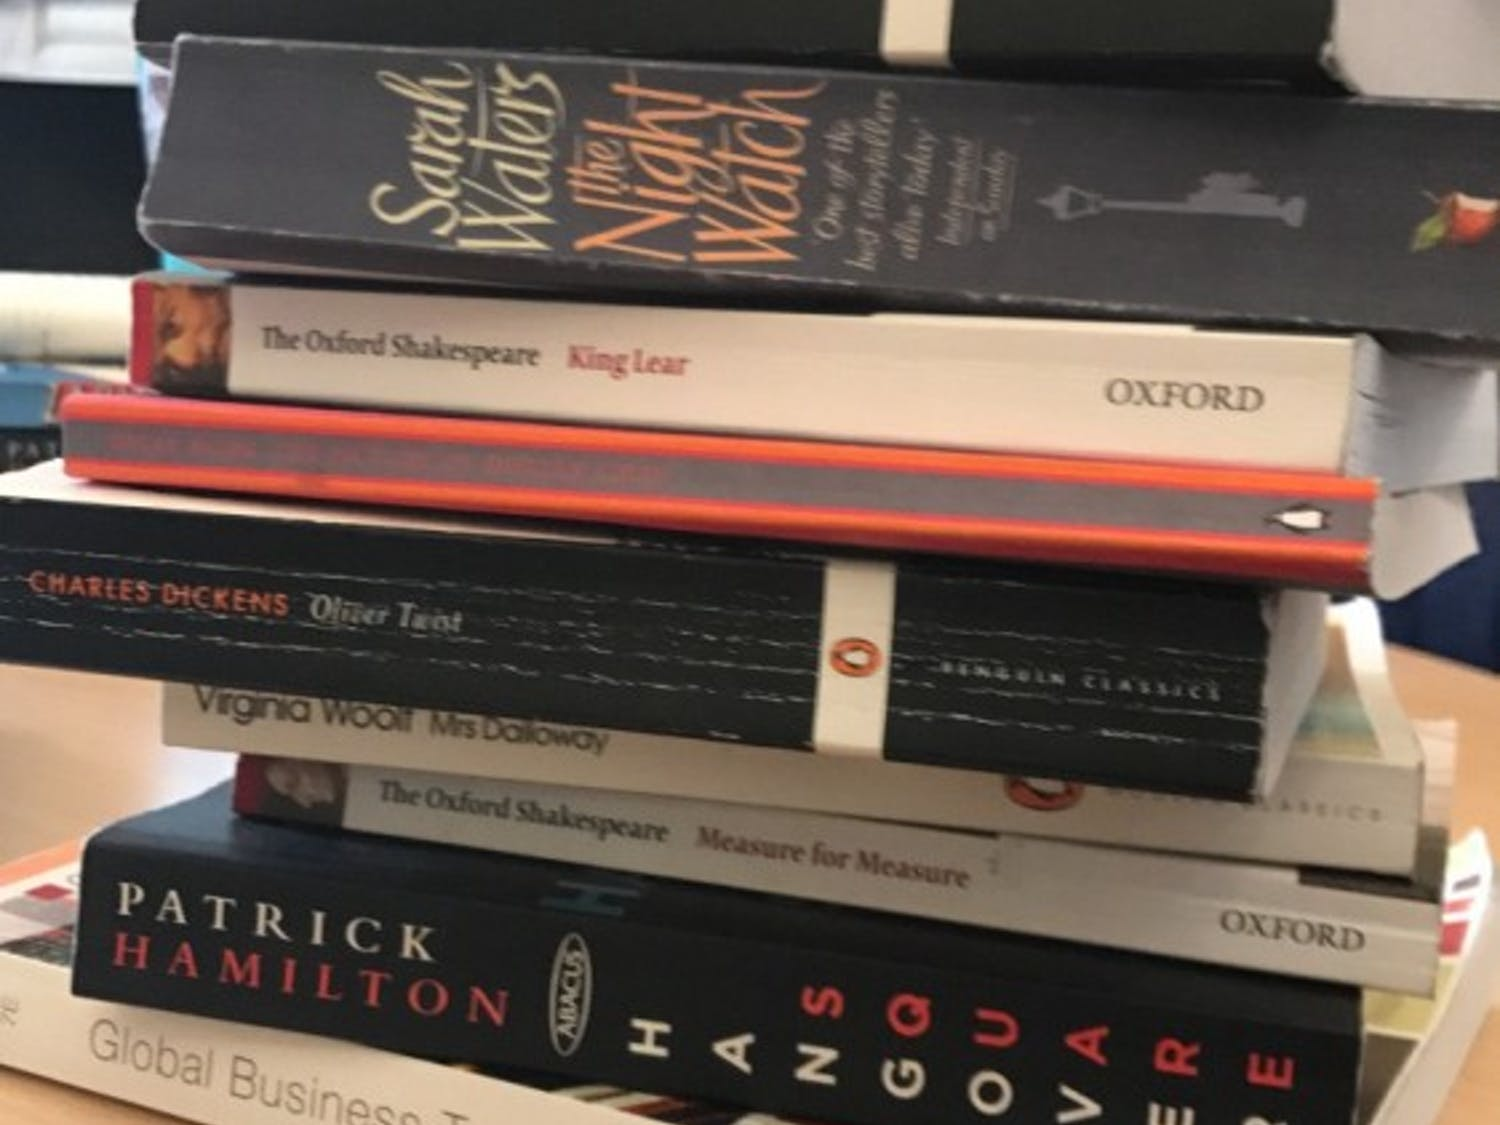 A semester's worth of books. That's life in London.